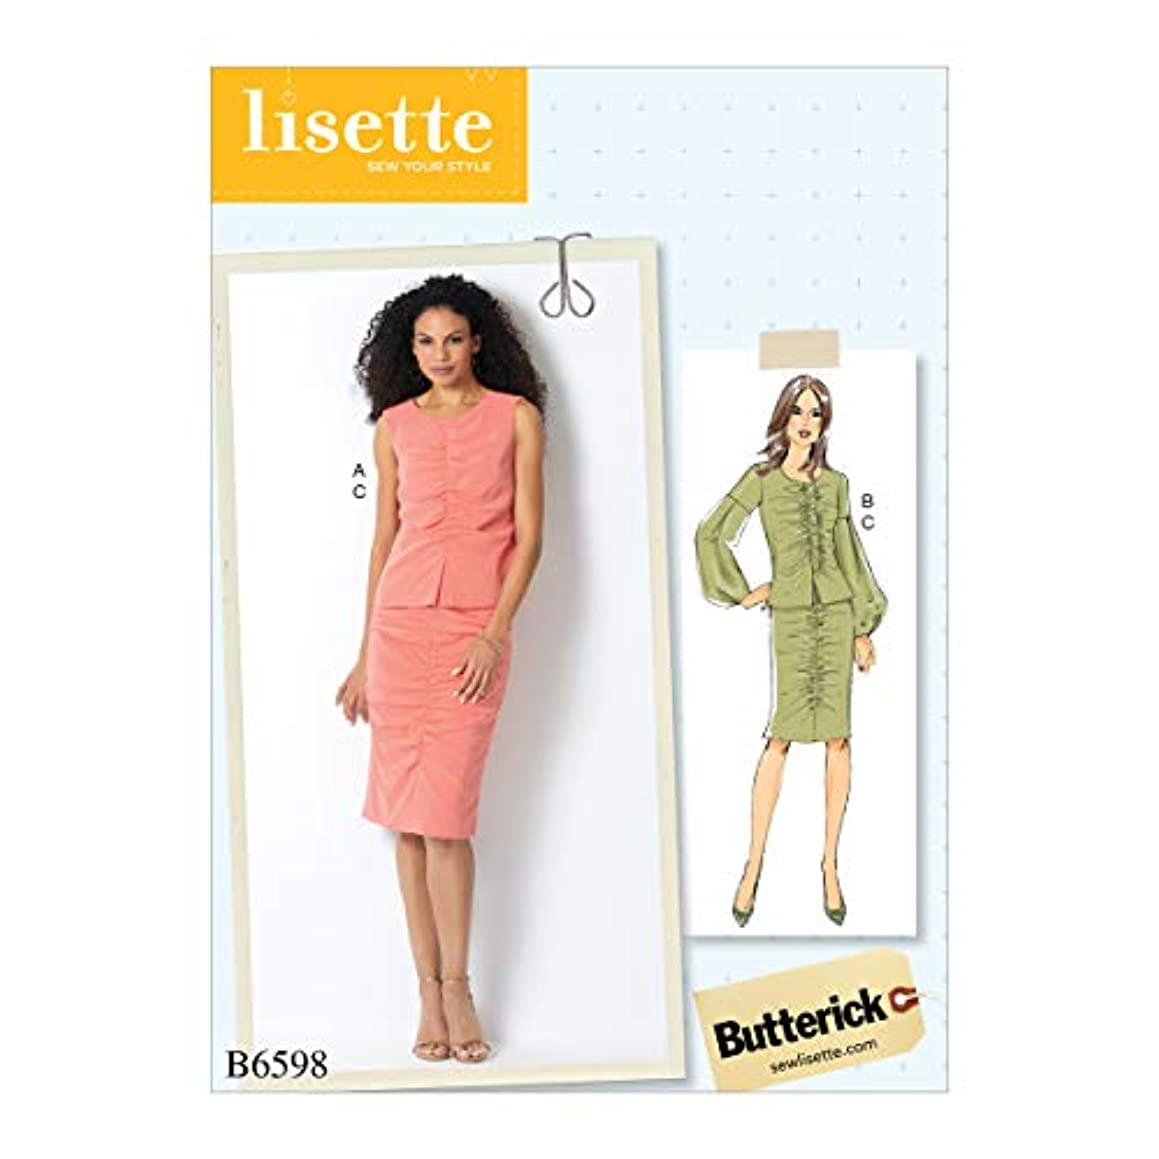 McCall's Patterns B6598E5 BUT BUT 6598 Casual Butterick Patterns B6598 E5 Misses' Top and Skirt by Lisette, Size 14-22?, 14-16-18-20-22, White